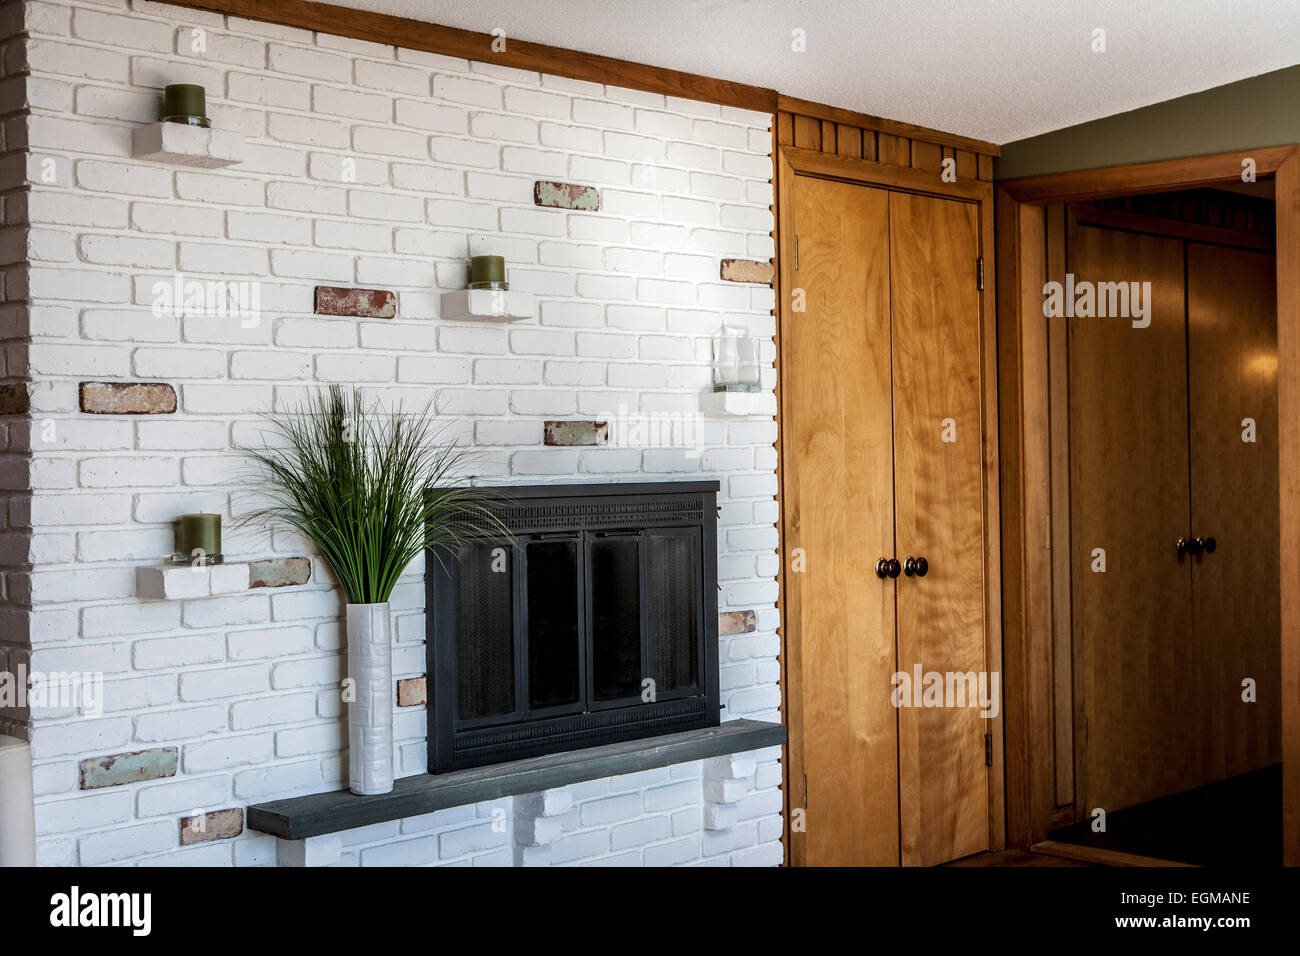 master bedroom fireplace with white brick wall stock photo master bedroom fireplace with white brick wall